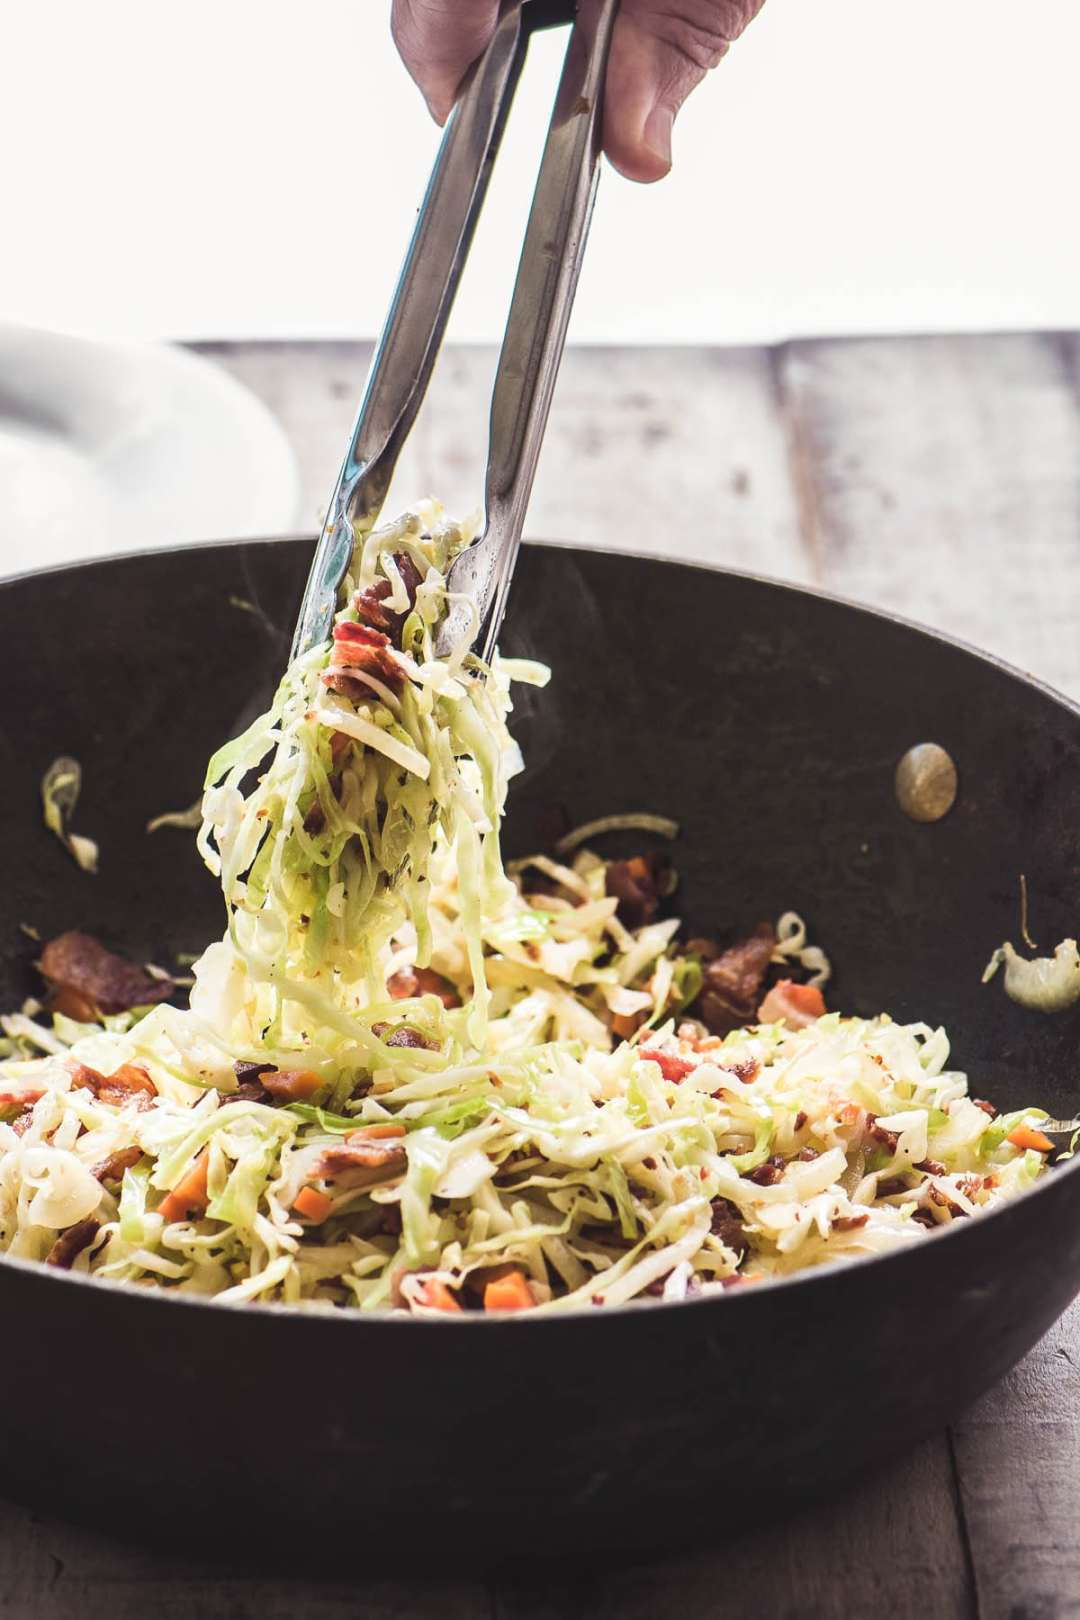 A skillet with fried cabbage and bacon slaw